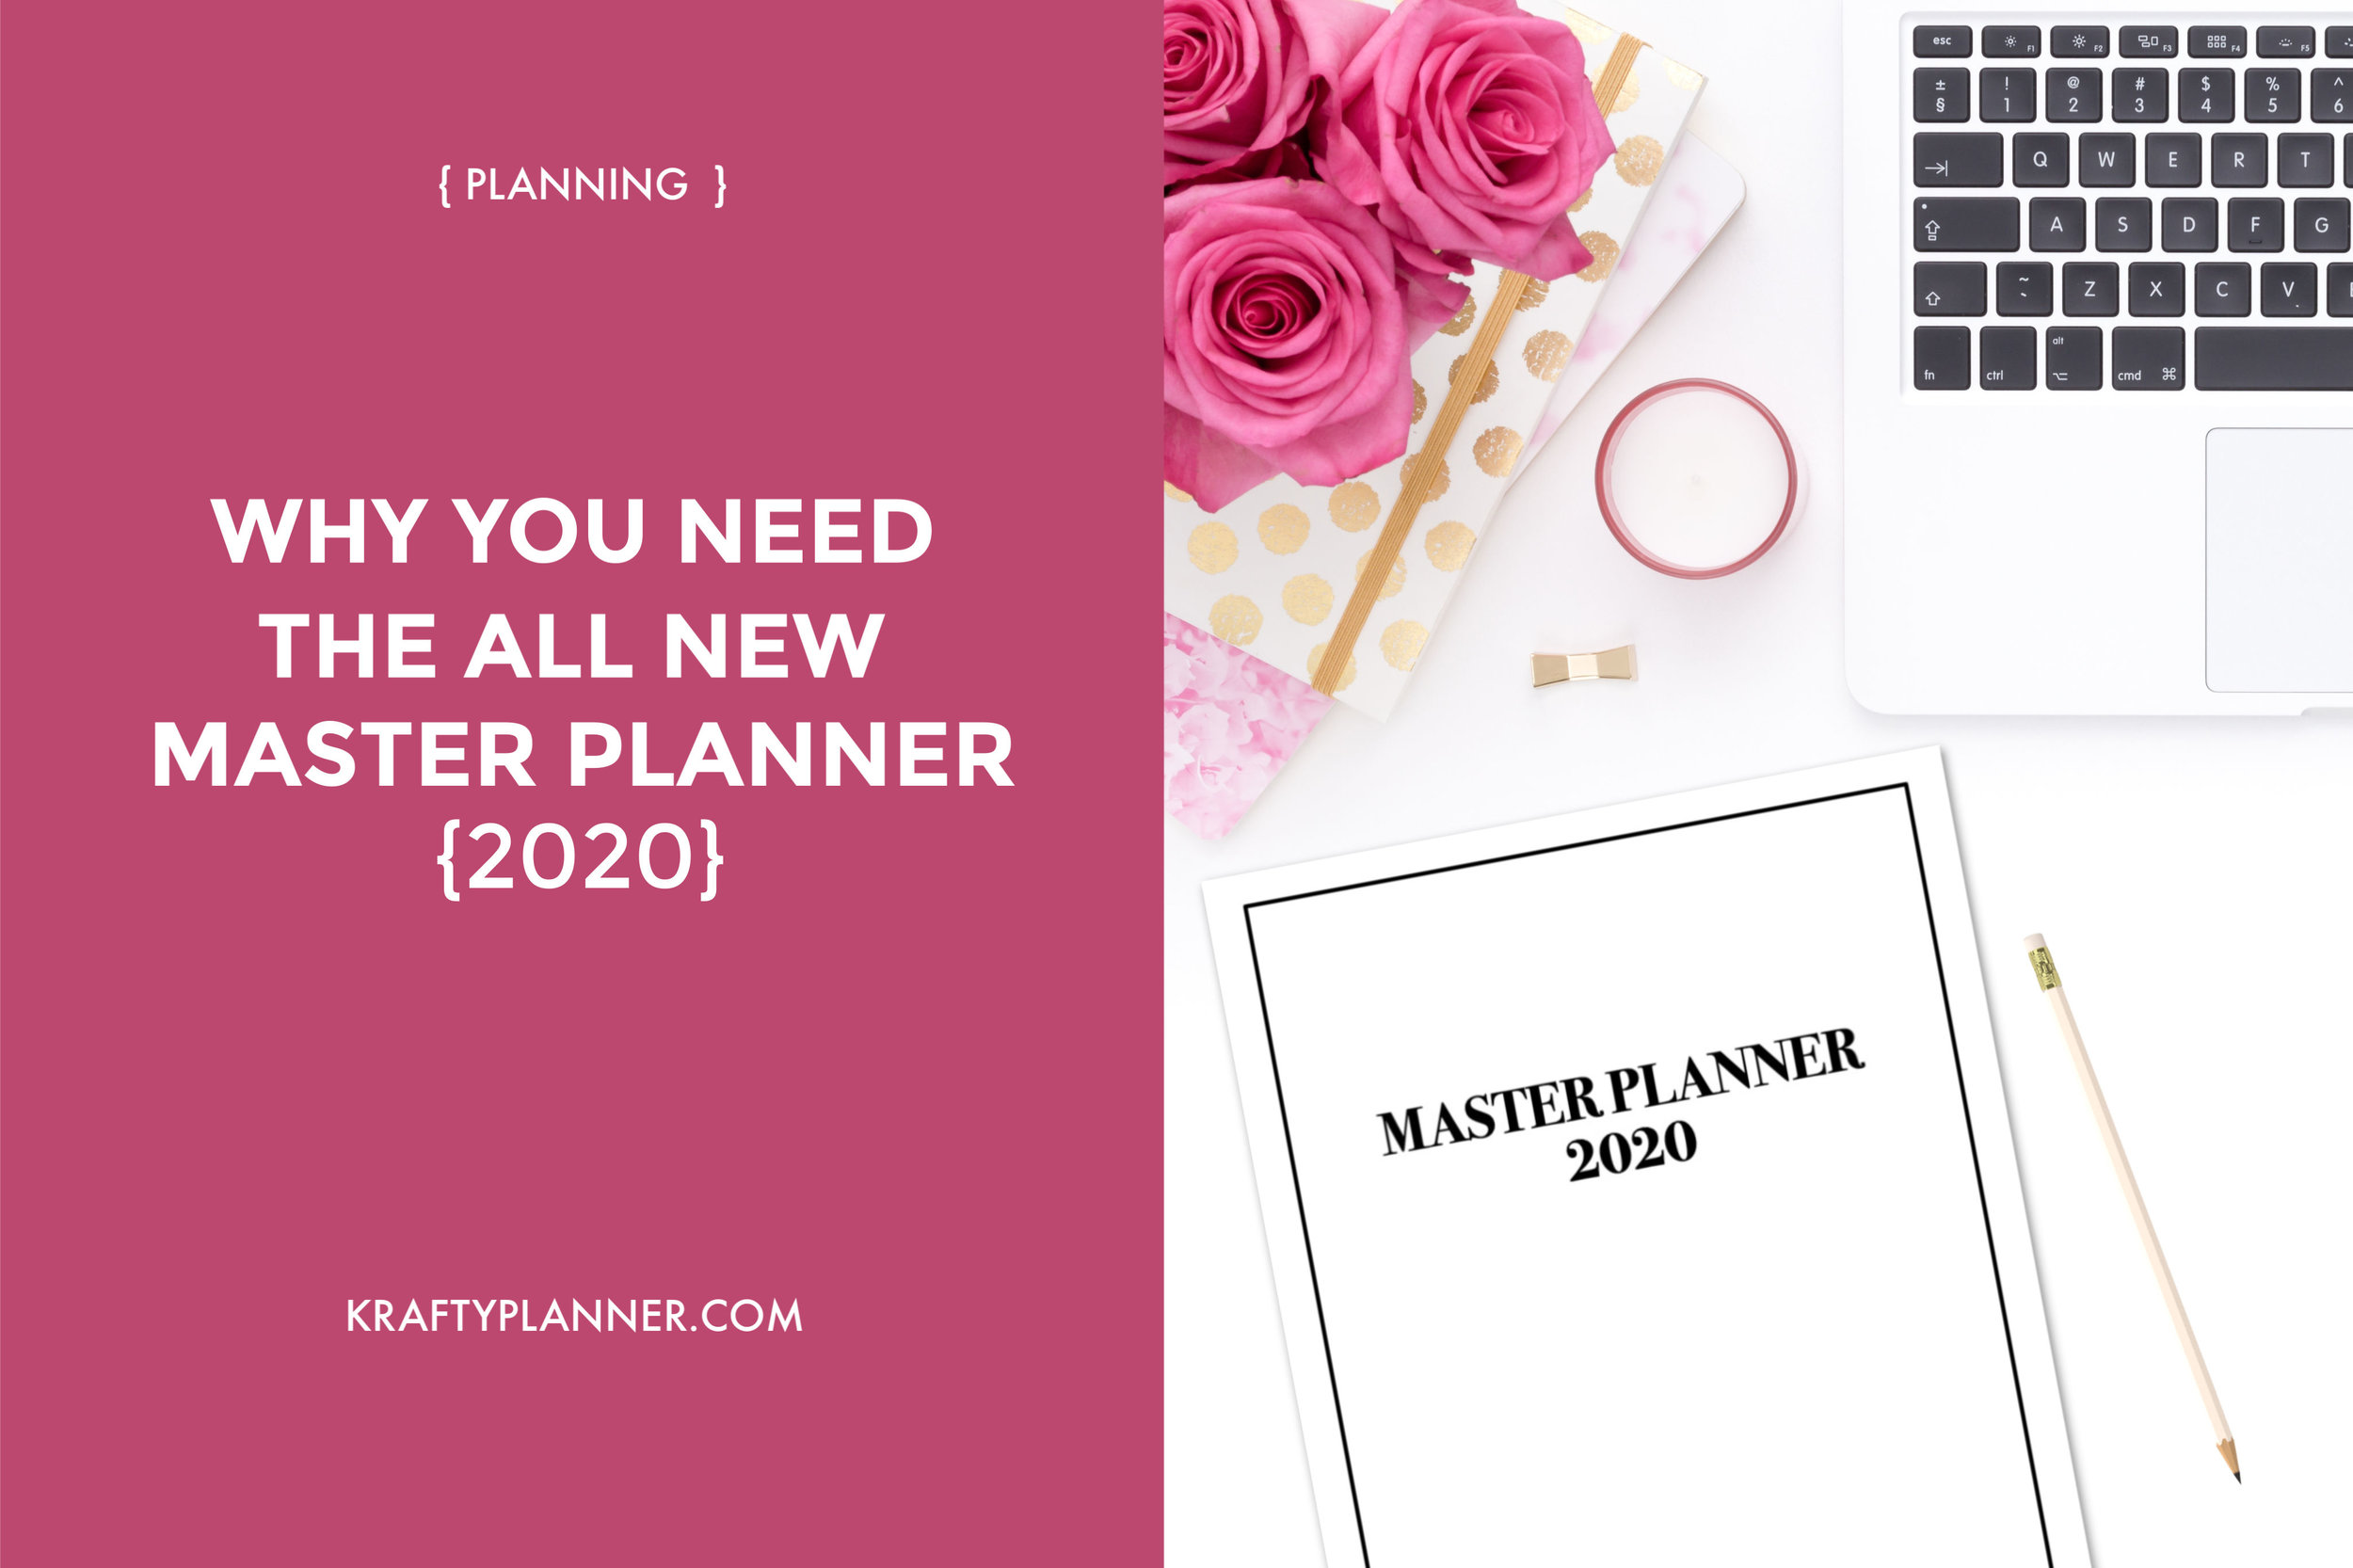 Why you need the all new master planner.jpg